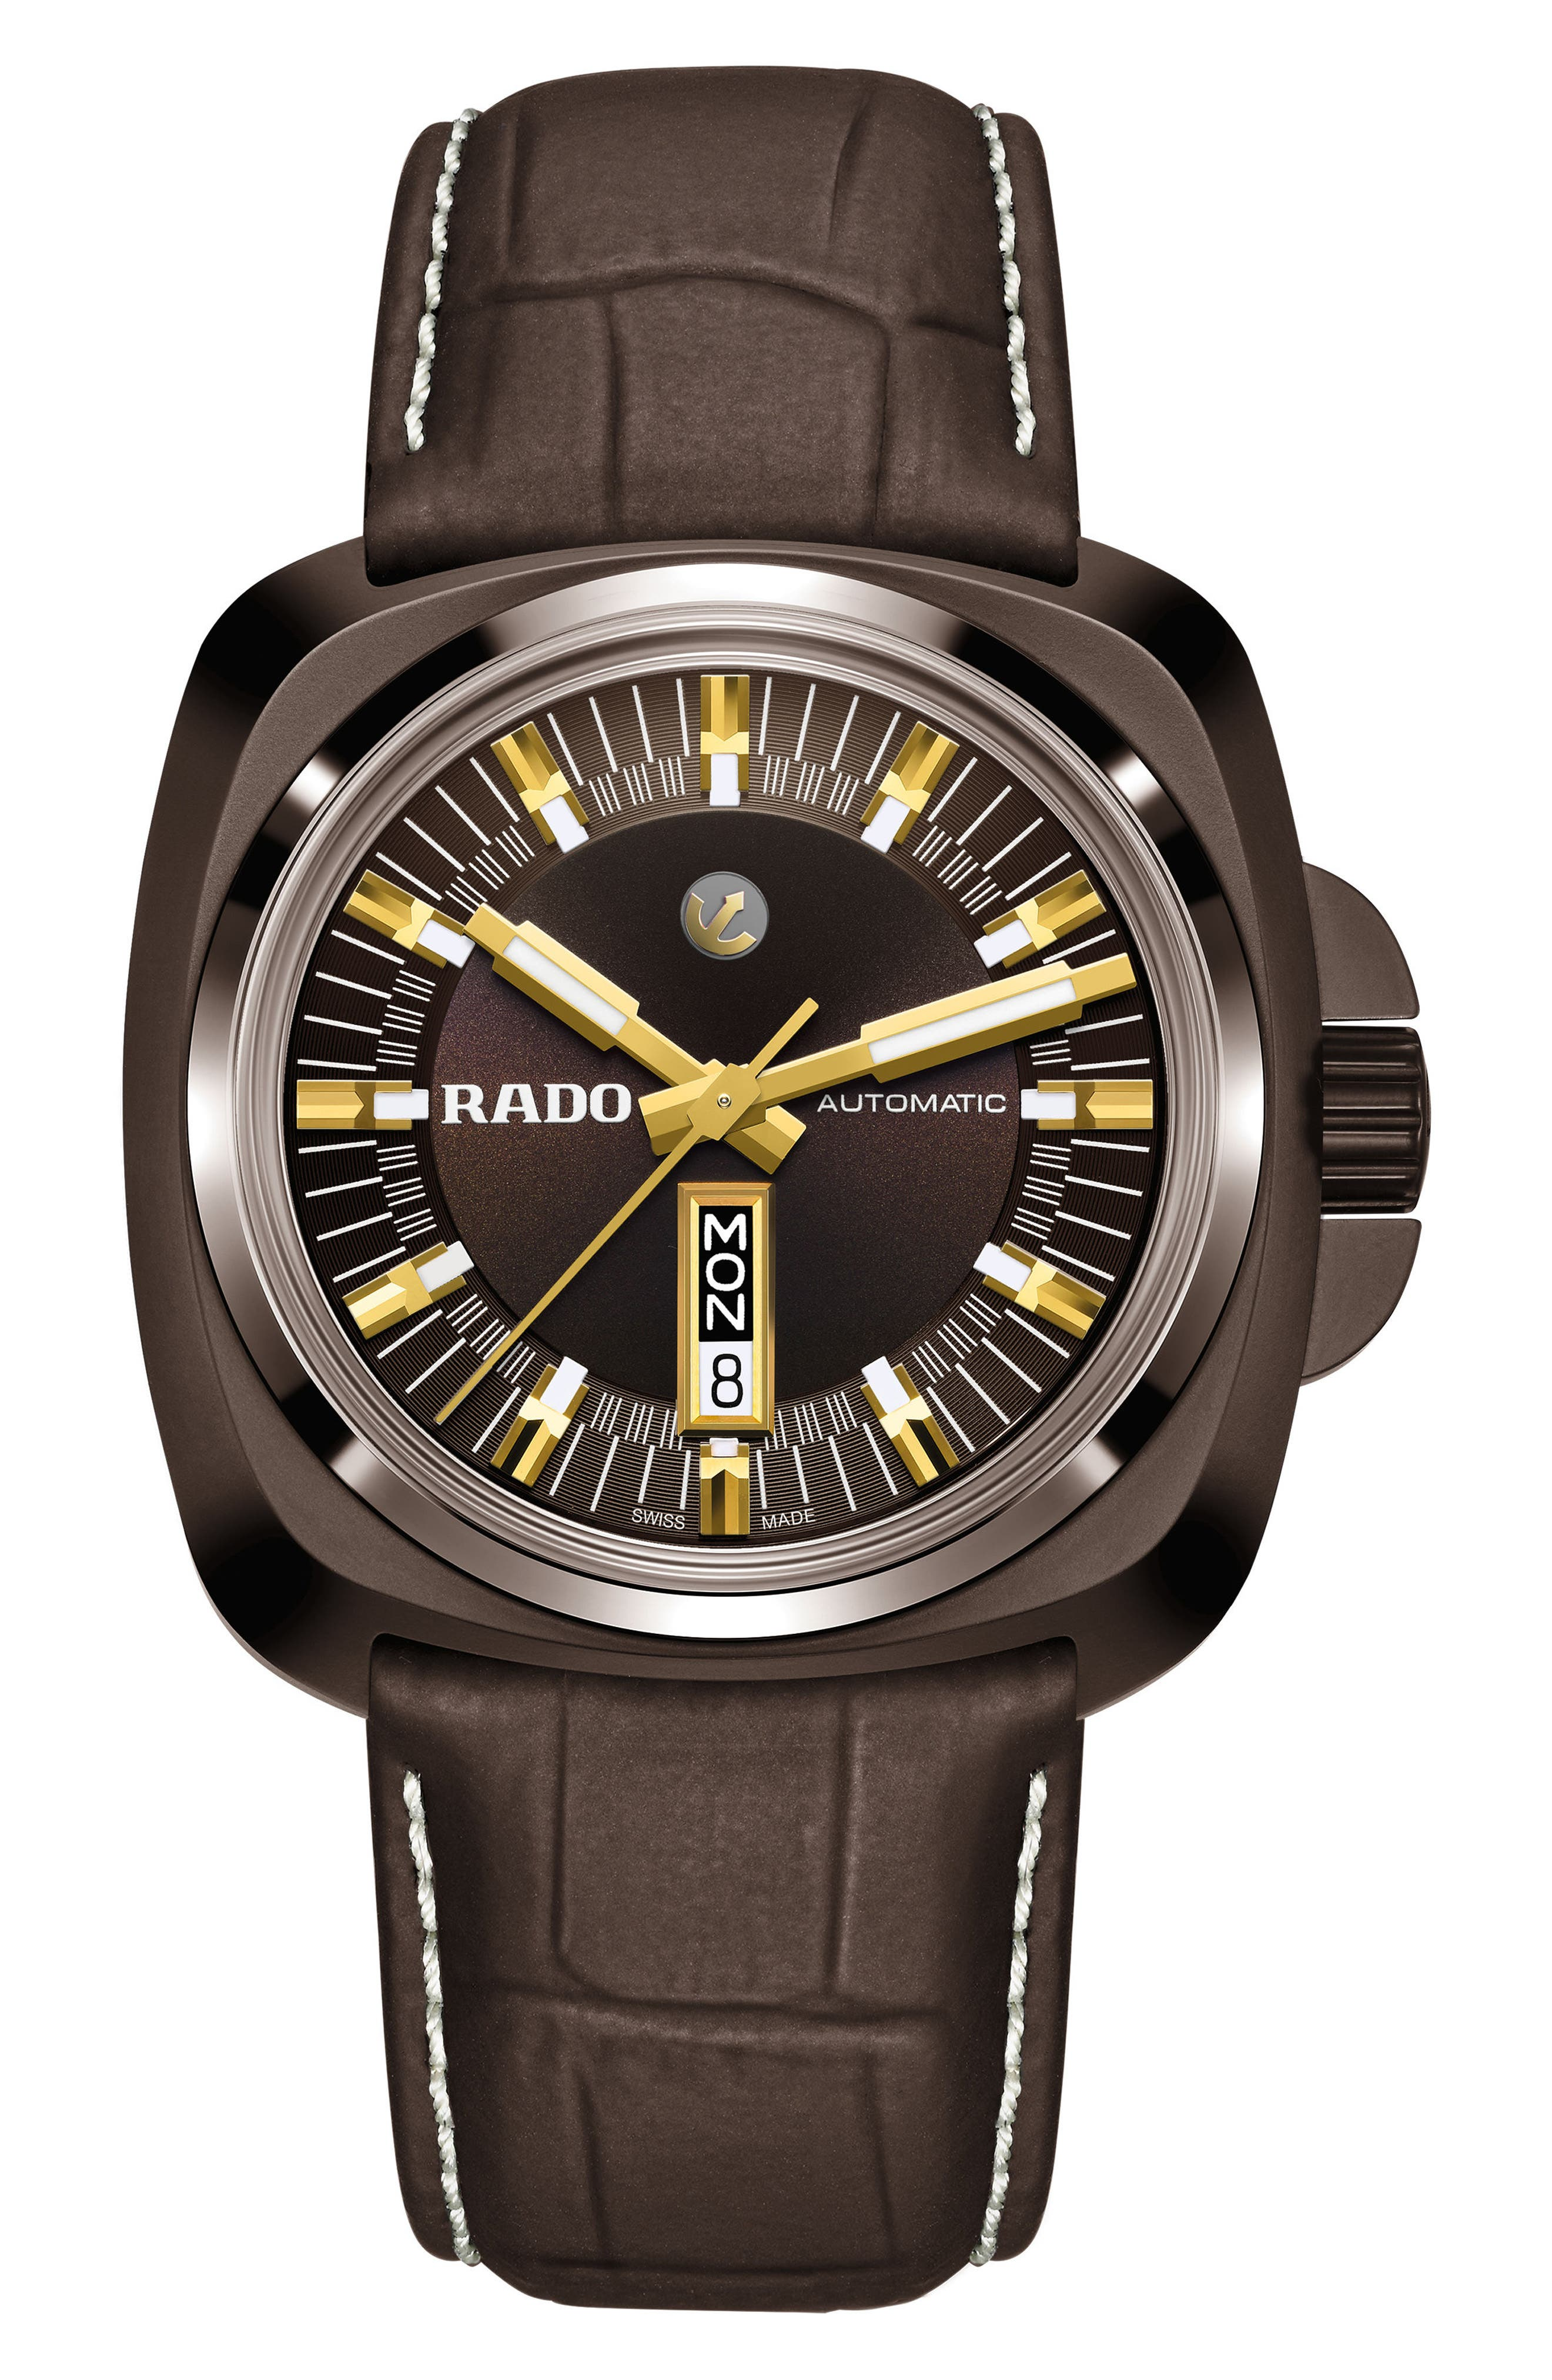 RADO HyperChrome 1616 Automatic Leather Strap Watch, 46mm